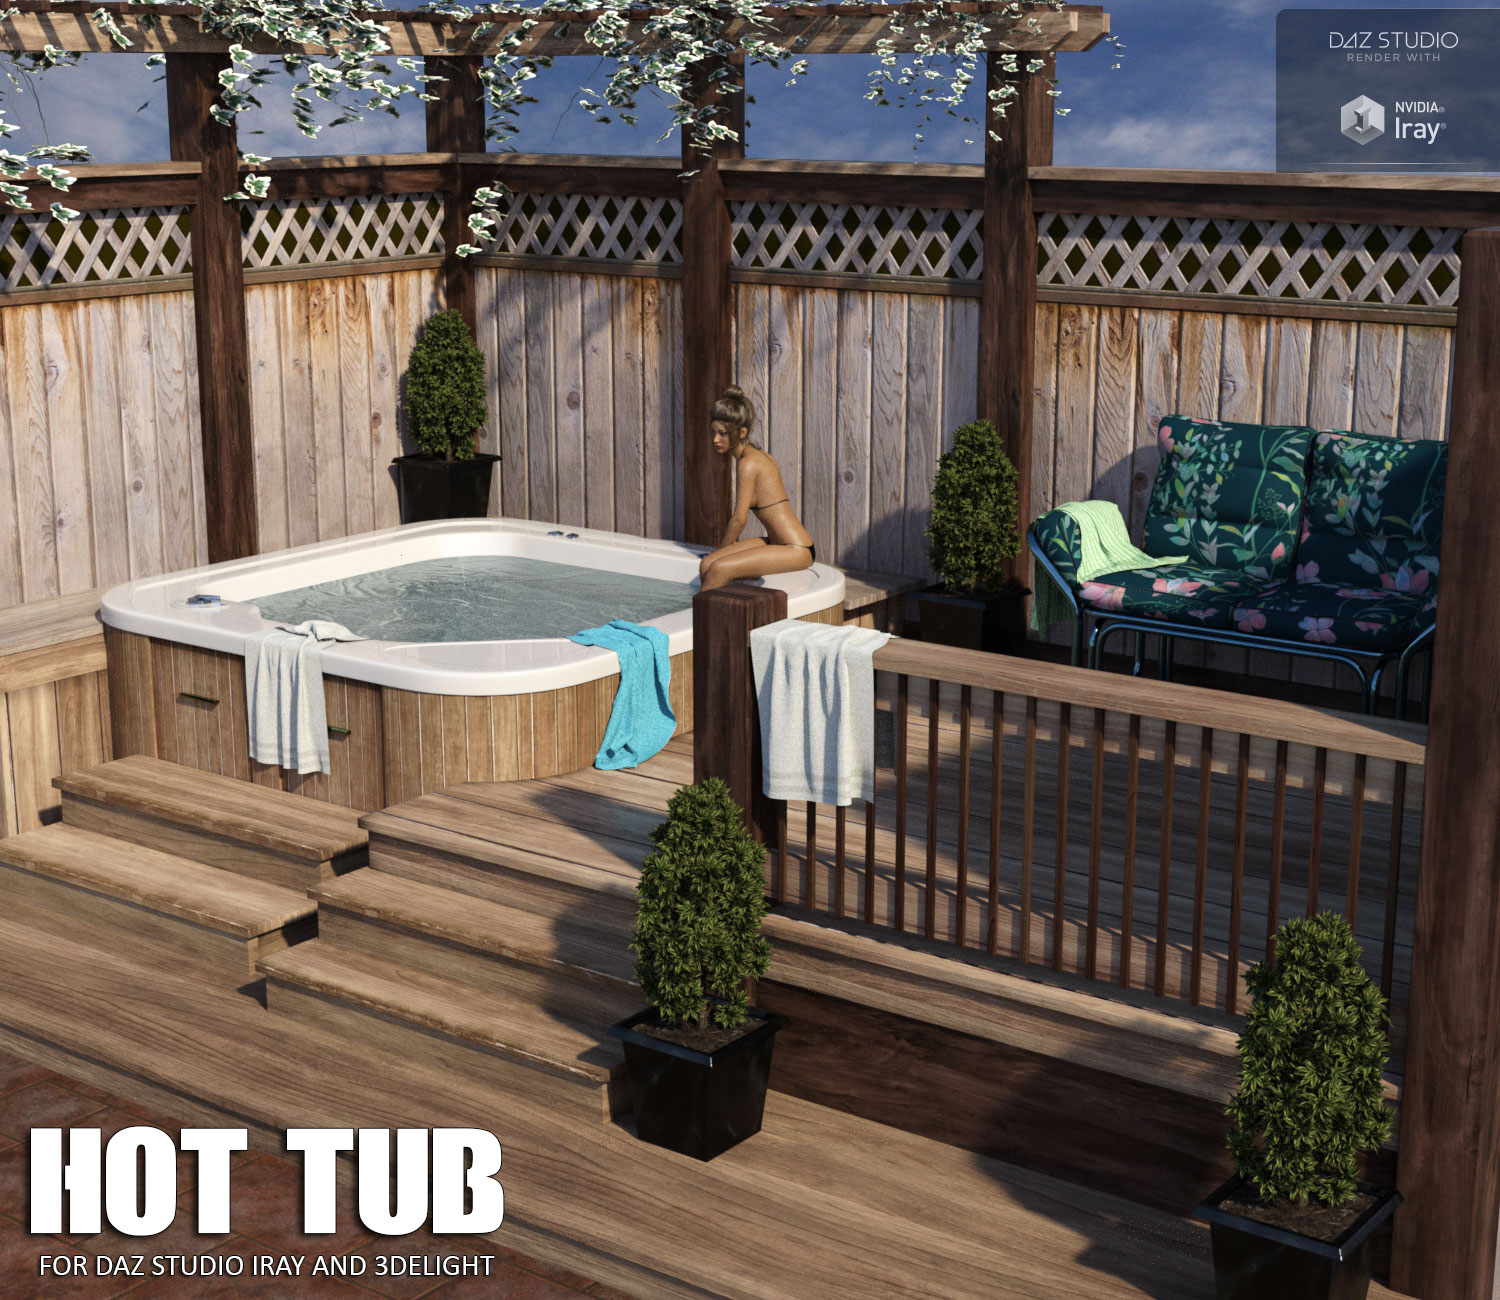 Hot Tub Daz Studio - Extended License by lilflame